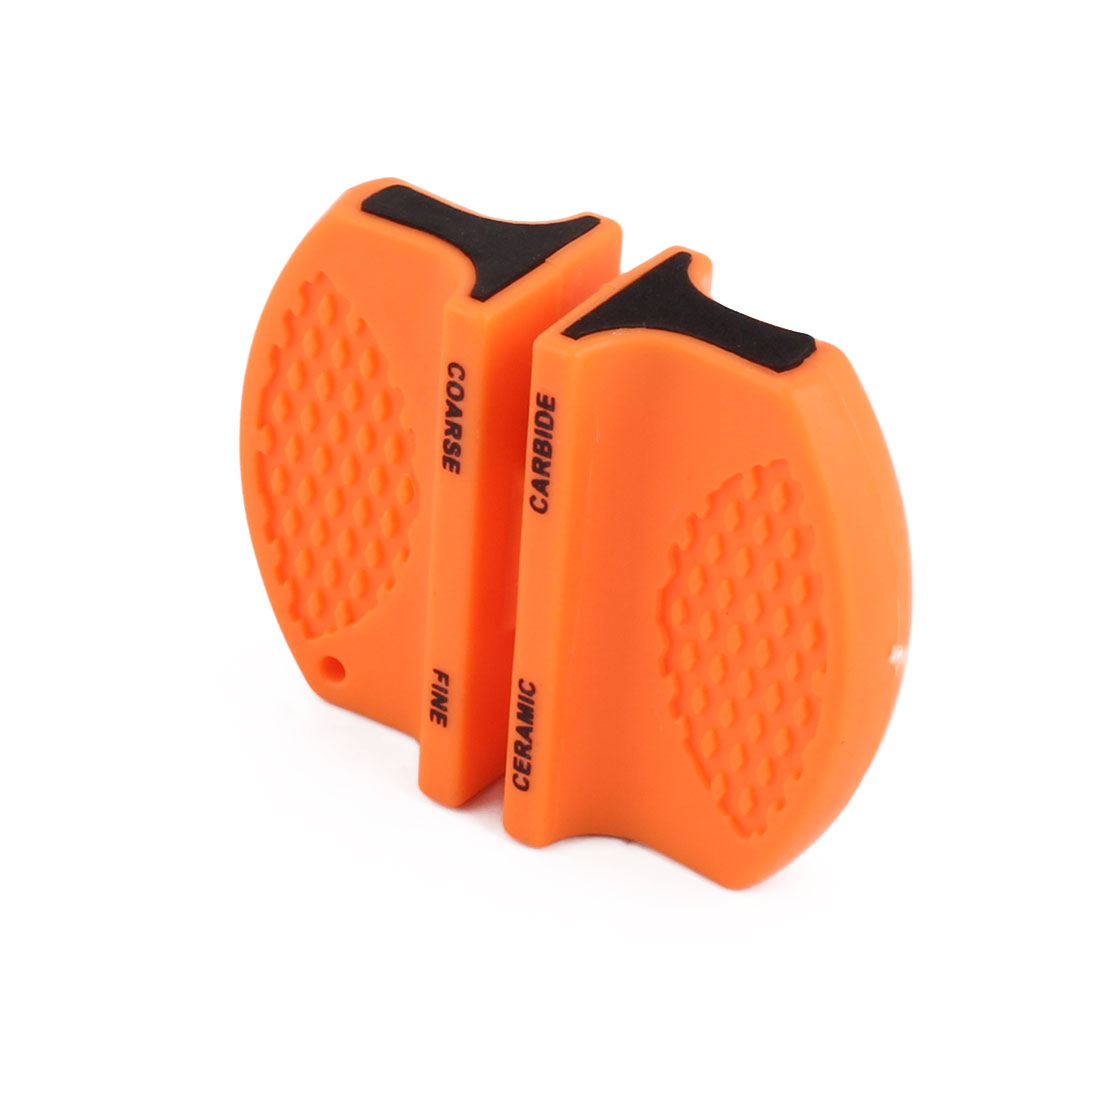 Household Kitchen Portable Pocket Cutter Sharpener Grinder Black Orange